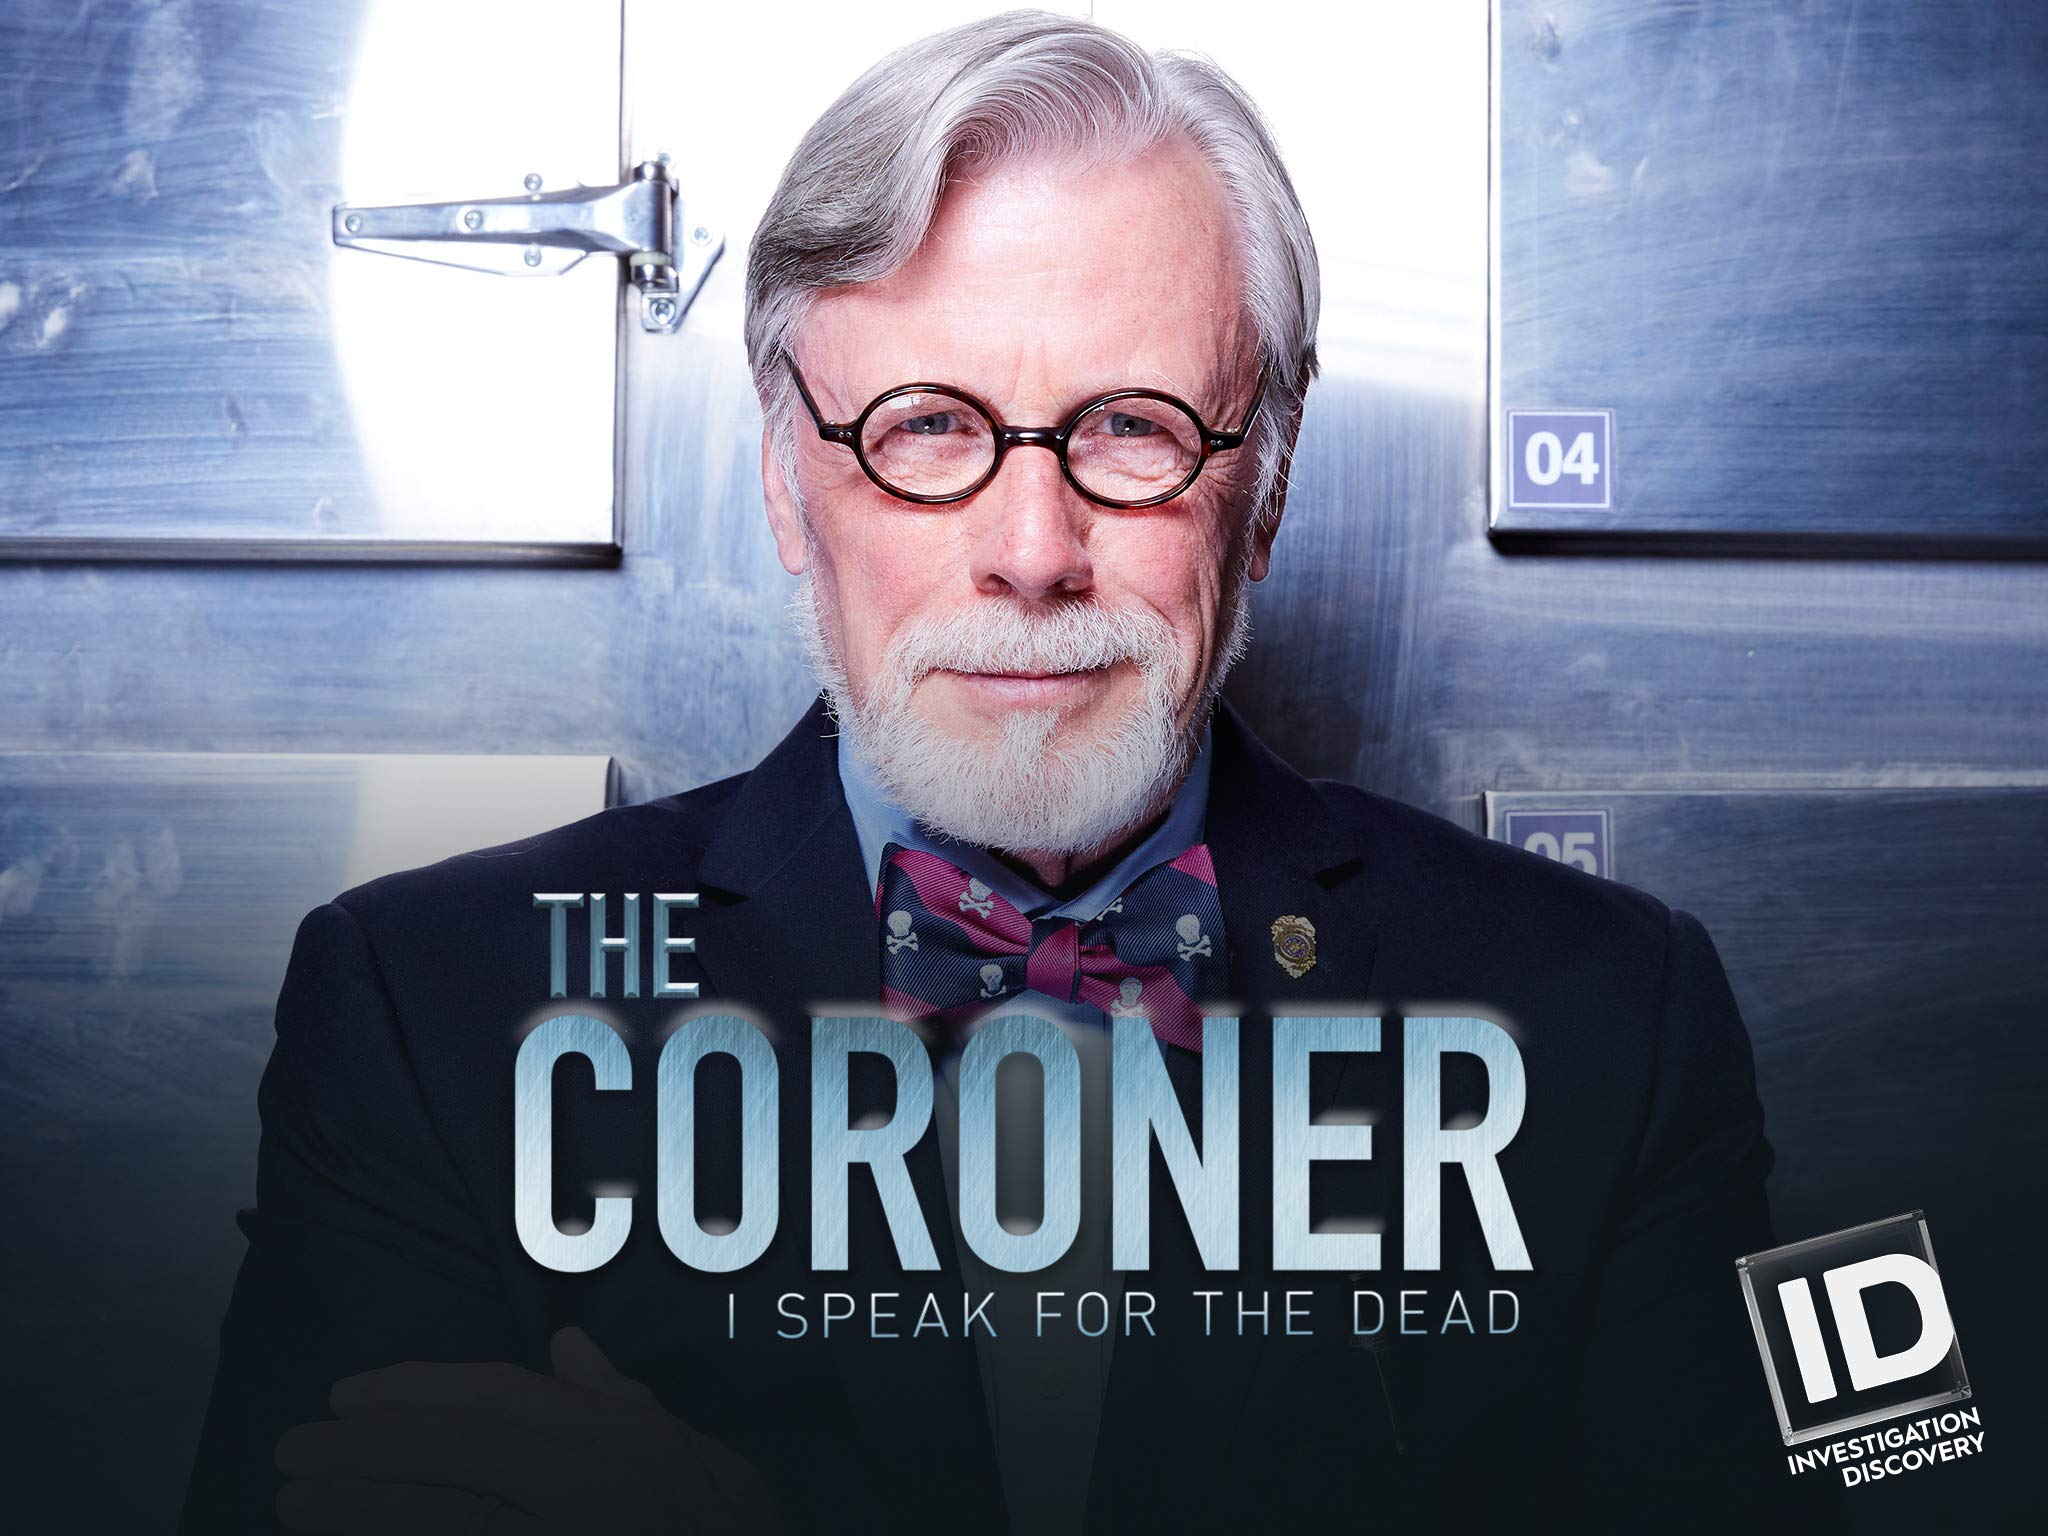 the coroner i speak for the dead season 3 episode 7